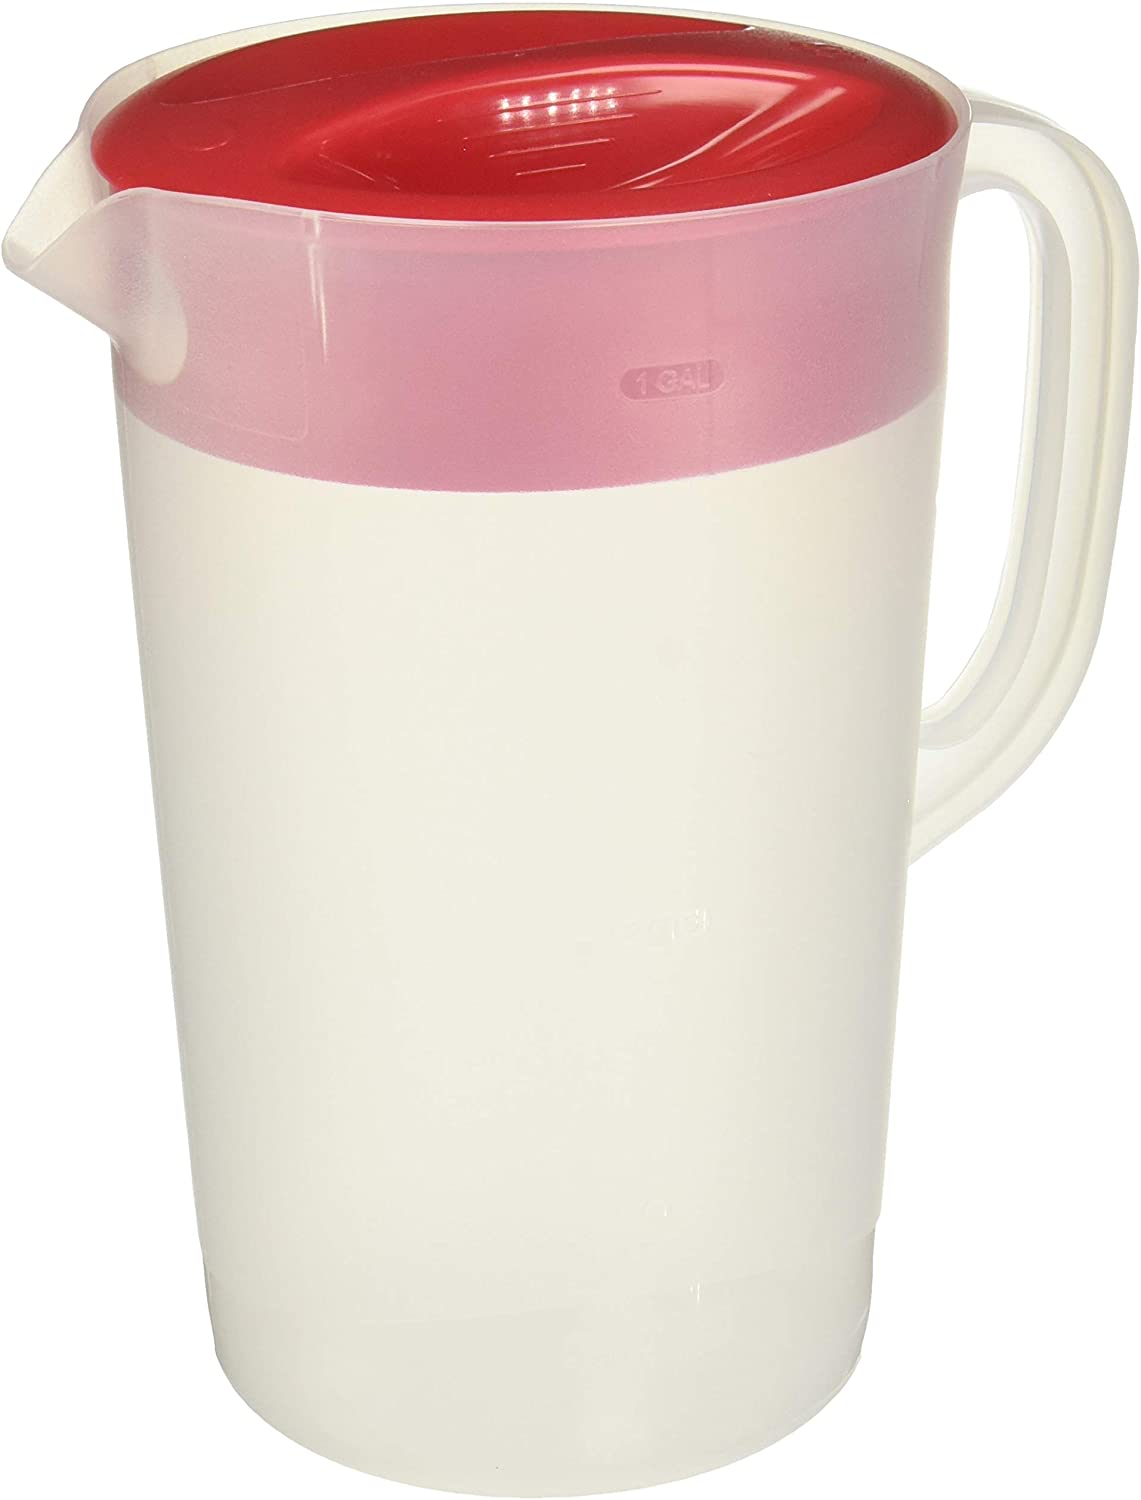 Rubbermaid Gallon Covered Pitcher 1 Gallon (Set of 2), White